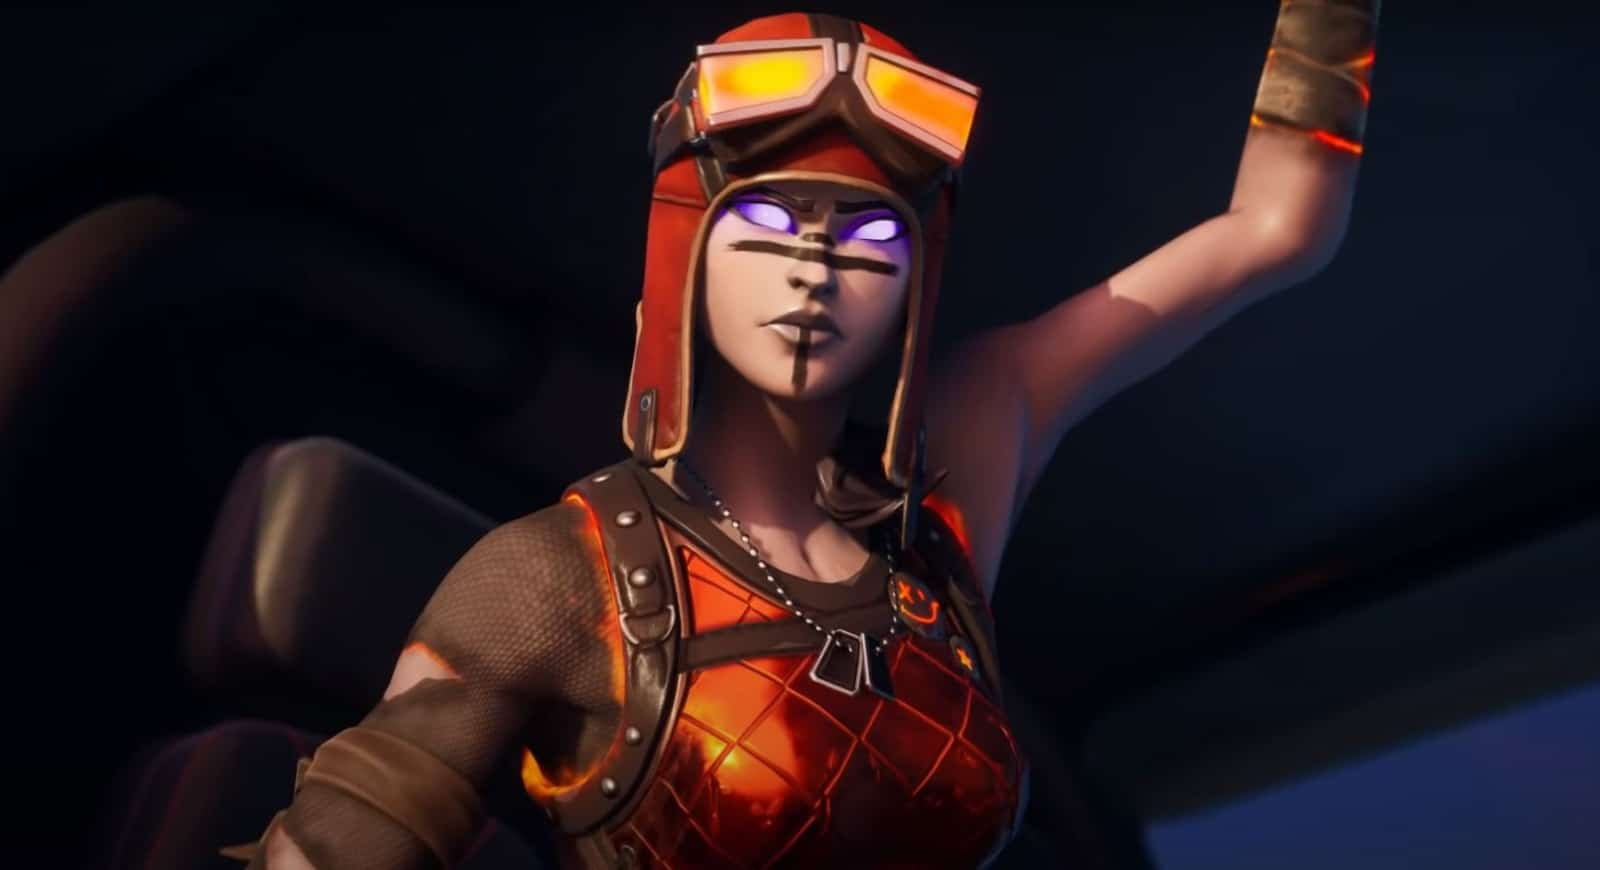 Fortnite Leaked Renegade Raider Skin Seen in Chapter 3 Trailer